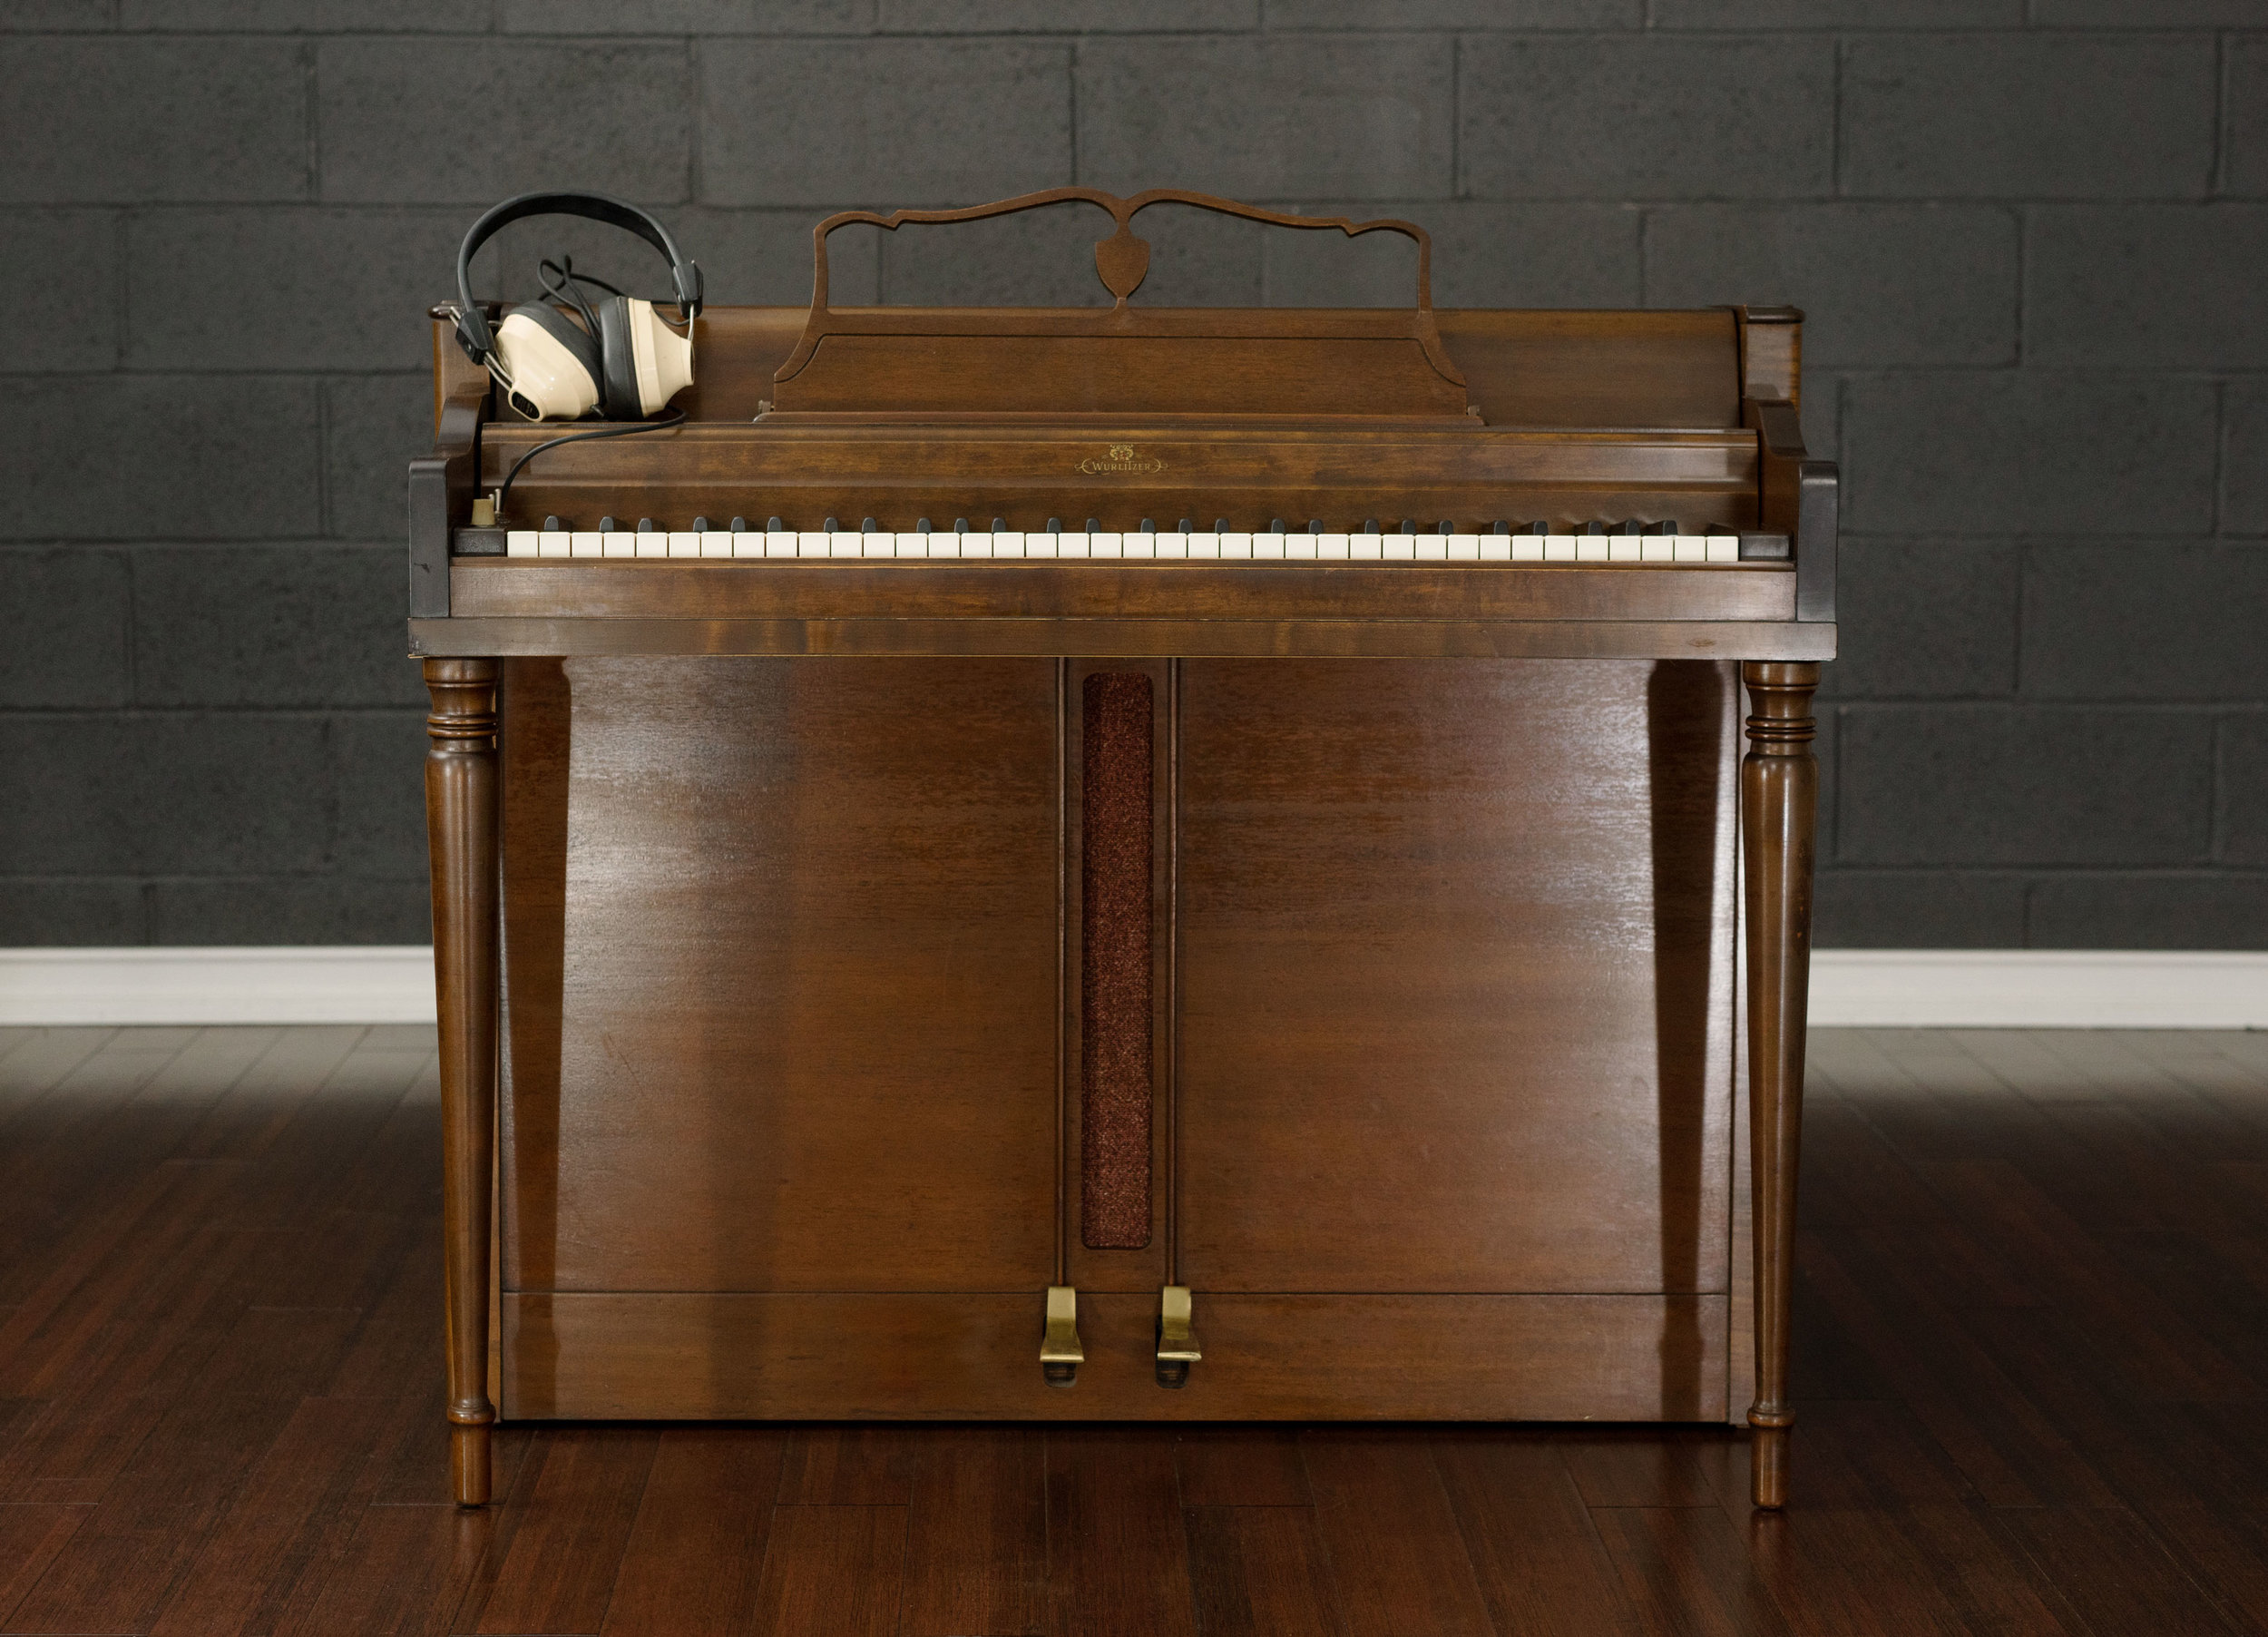 The Wurlitzer 726, the console student version of the Wurlitzer 140b. (Note the hard-wired headphones.) Inside, the cabinet is empty - other than an oval speaker and a 140b amplifier.